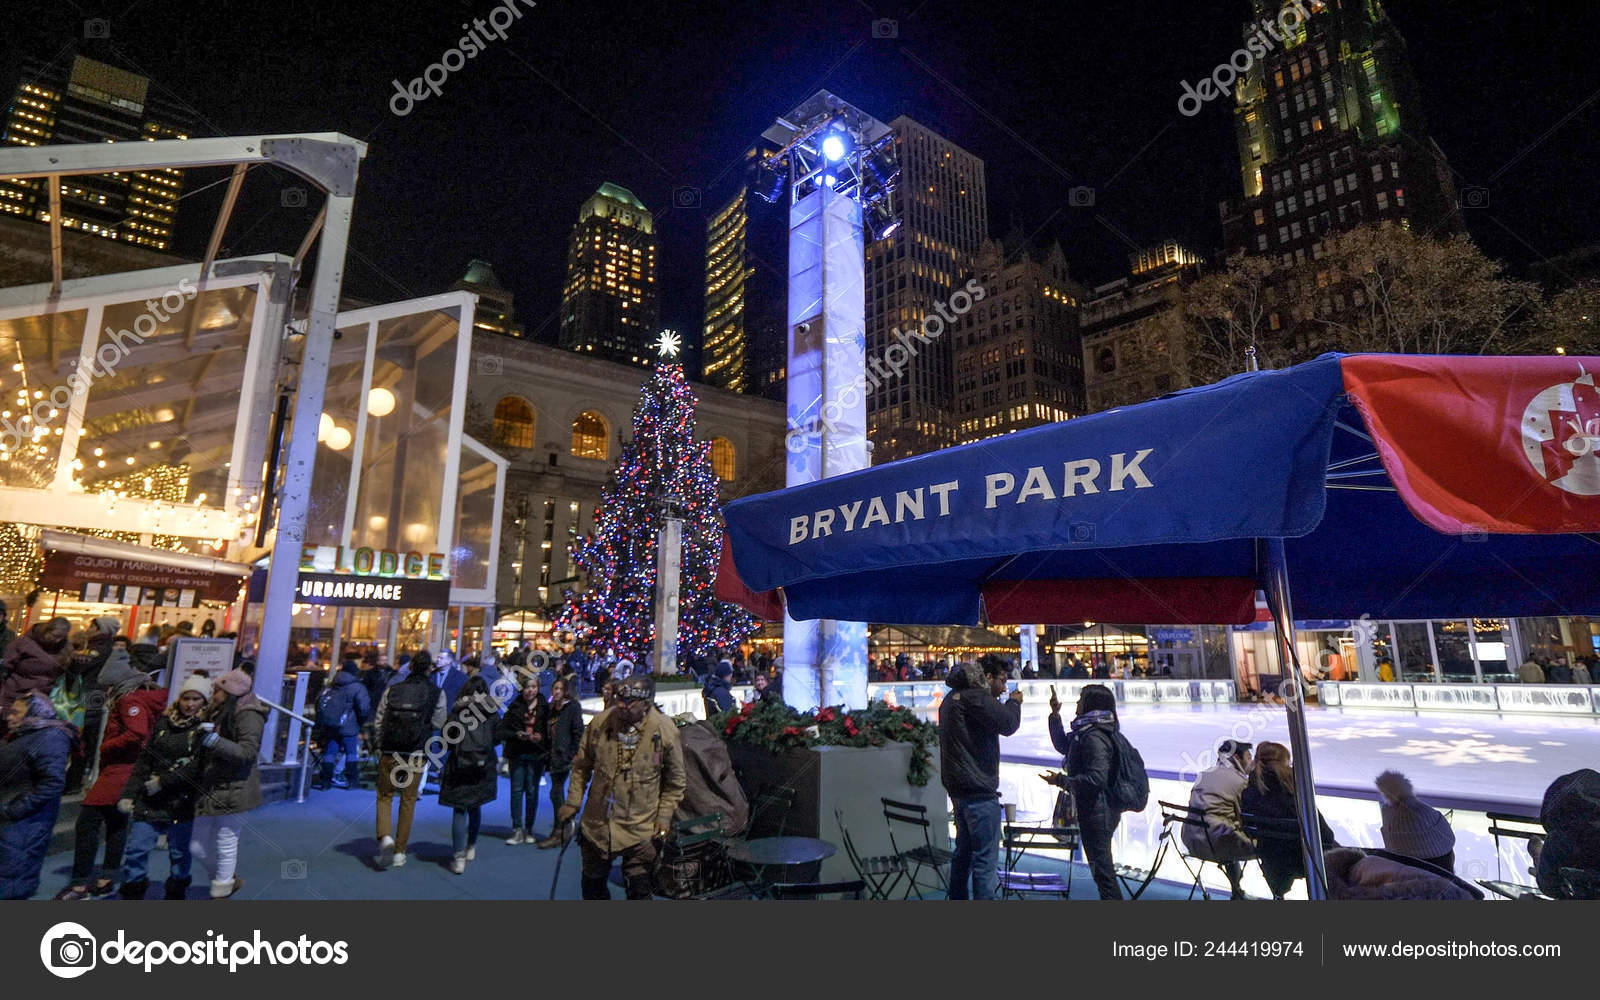 Bryant Park Christmas Market.Christmas Market At Bryant Park By Night New York Usa